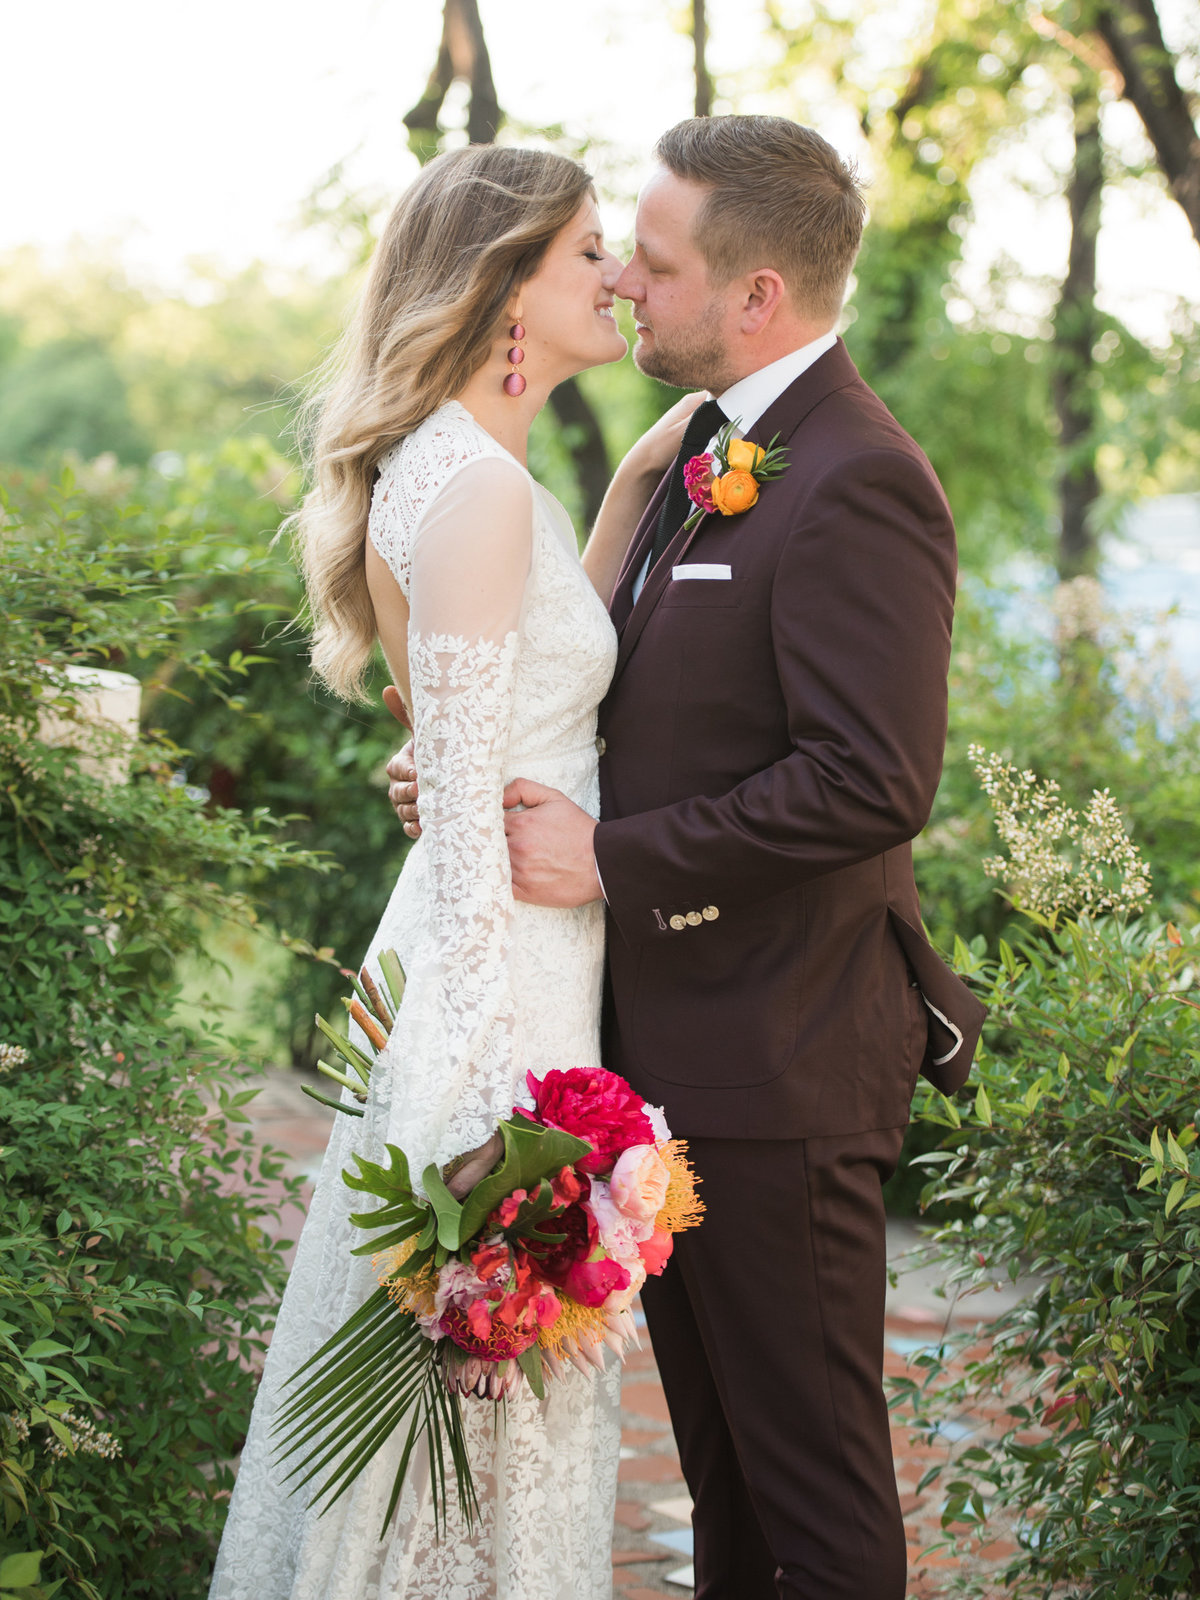 Courtney Hanson Photography - Vintage Tropical Wedding at The Belmont Hotel in Dallas-0626